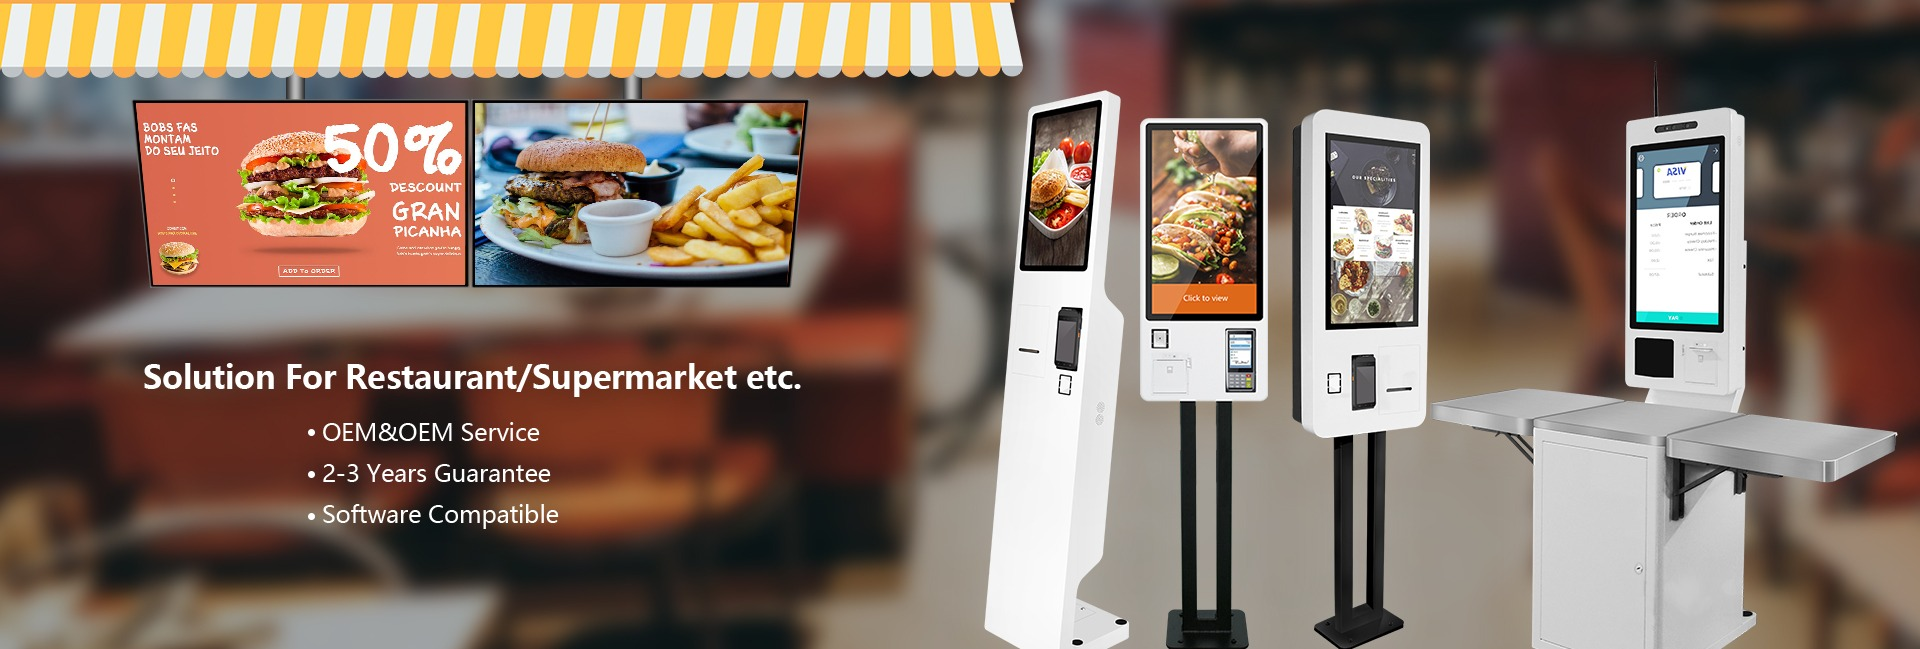 restaurant payment app Digital Screens and self order kiosk